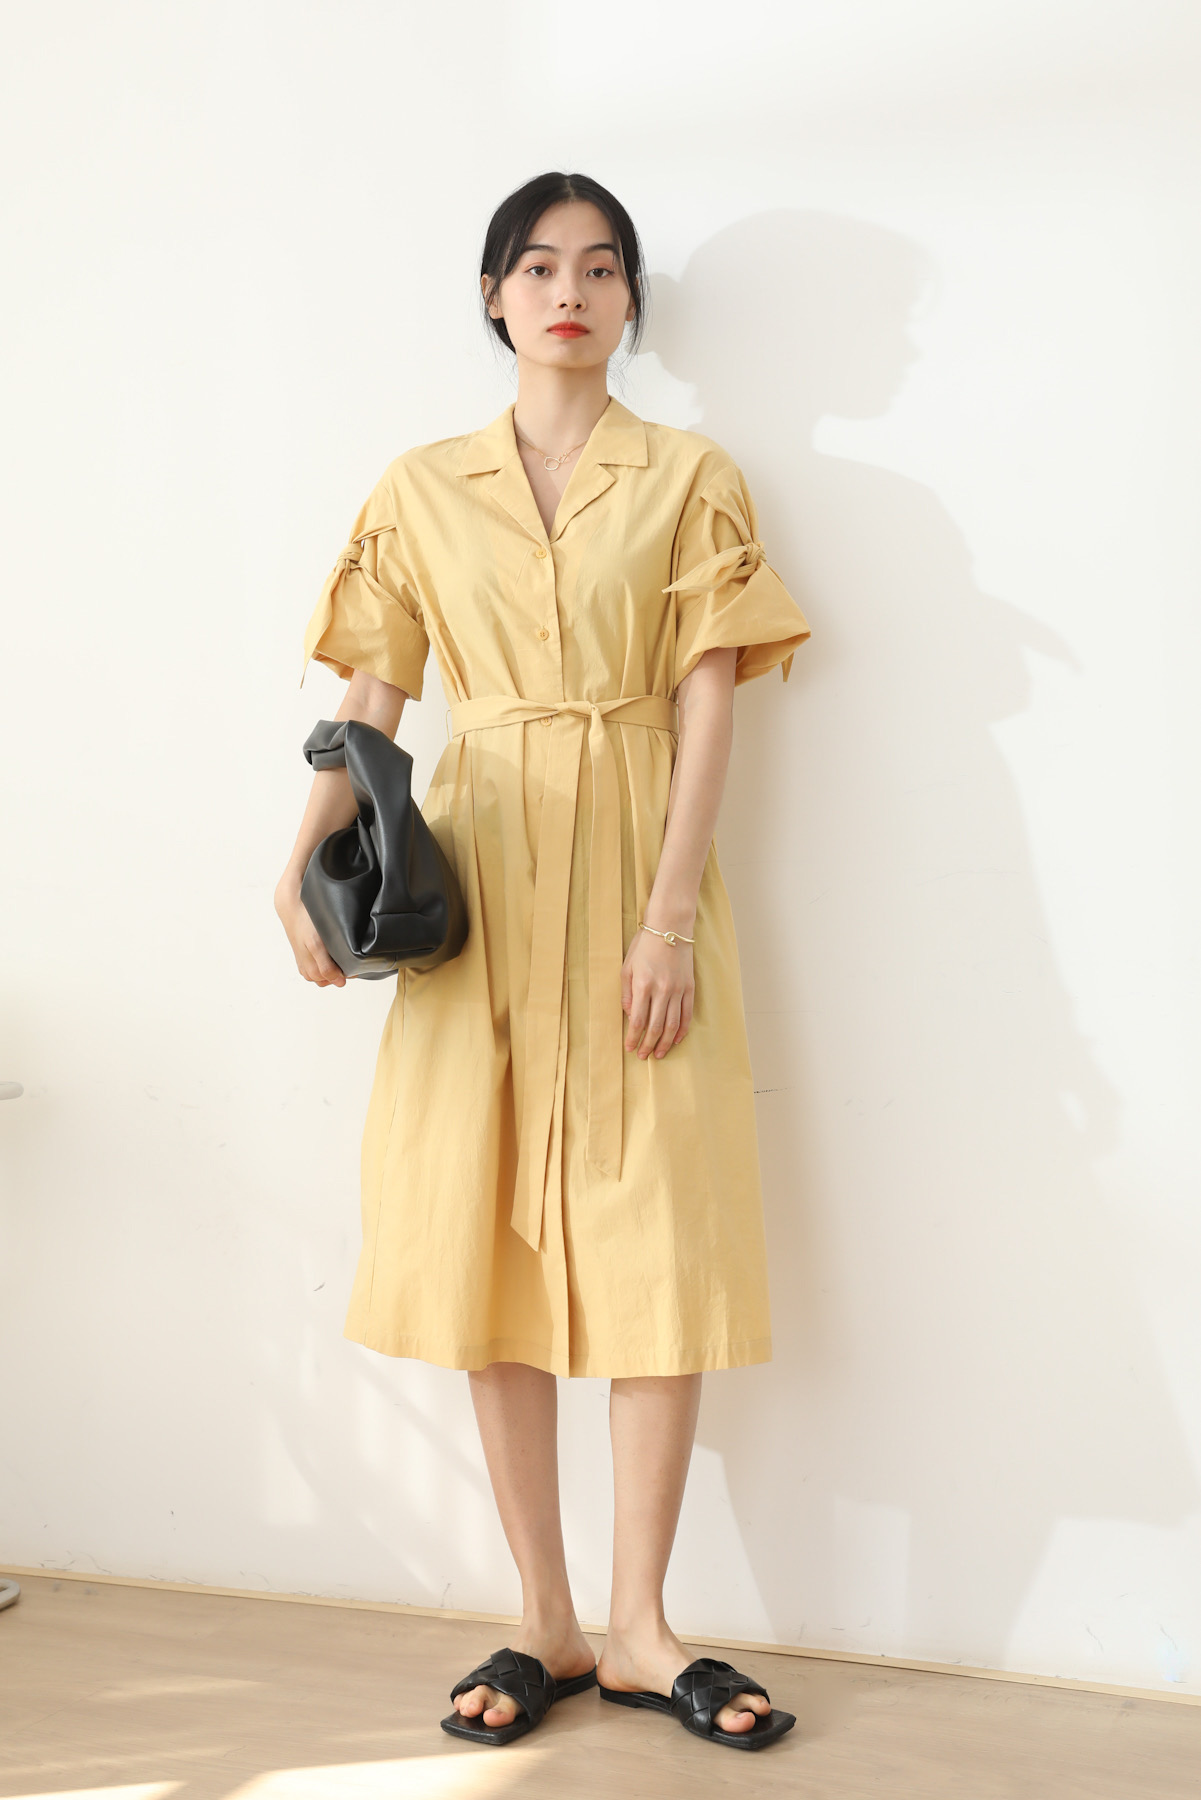 SKYE San Francisco Shop SF Chic Modern Elegant Classy Women Clothing French Parisian Minimalist Fashion Charlotte Belted Shirt Dress